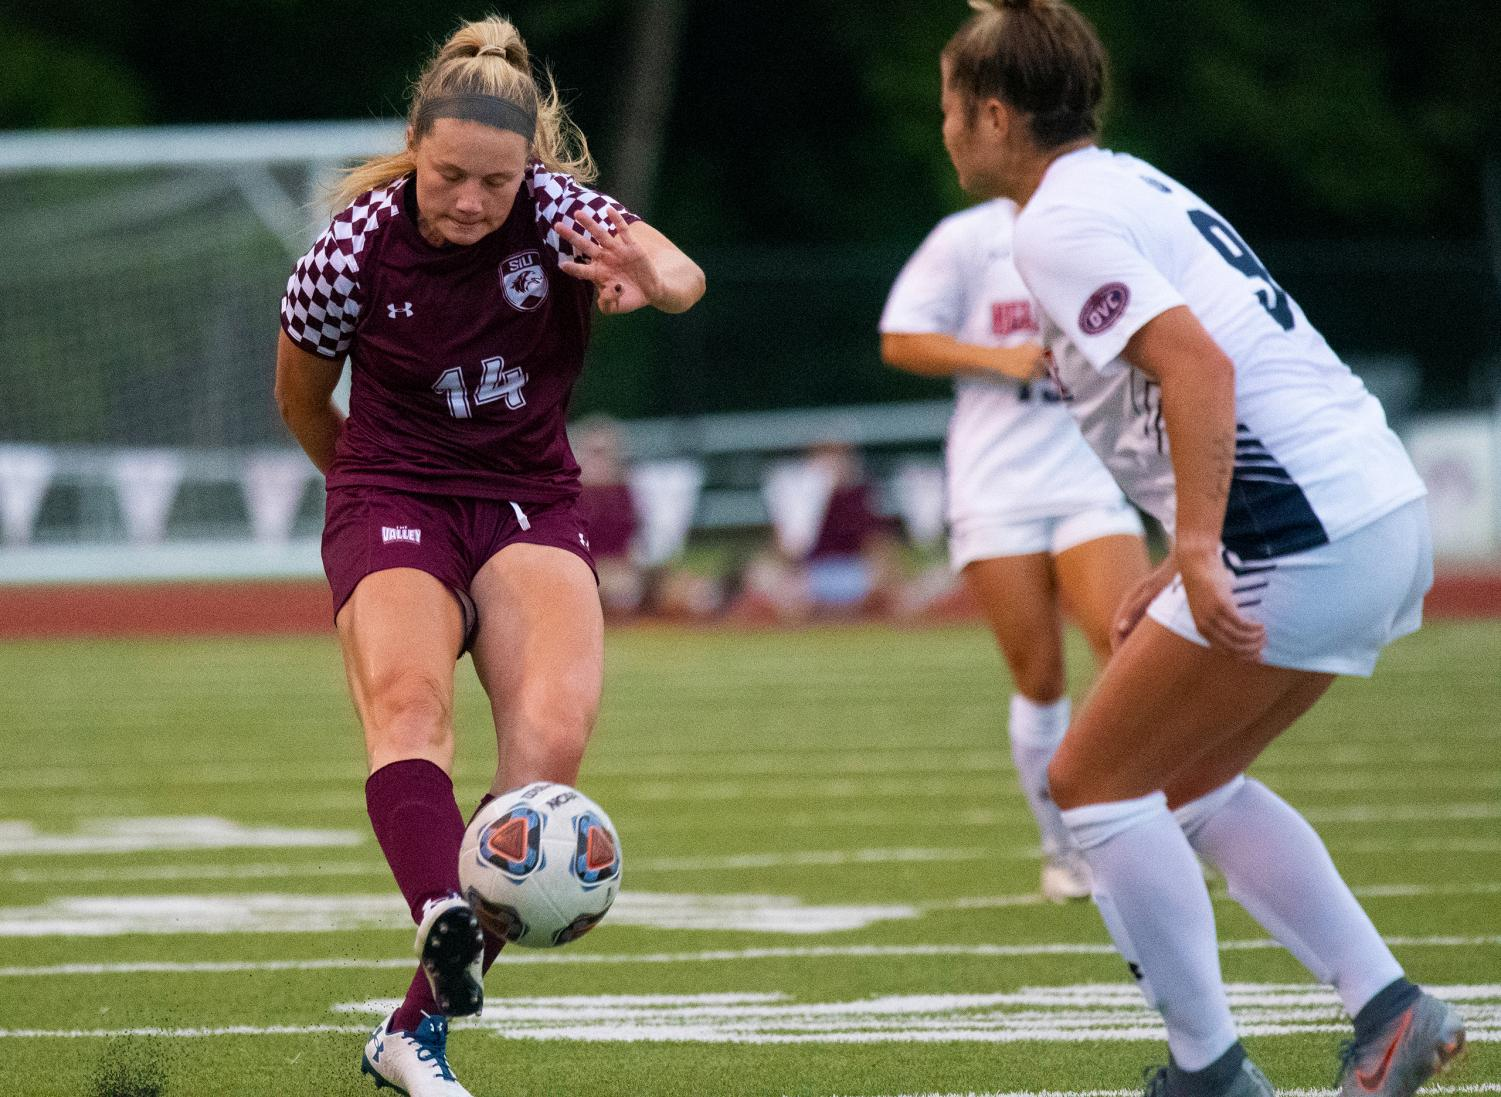 Saluki+Kaitlin+Ducharme+kicks+the+ball+on+Friday%2C+Aug.+30%2C+2019+during+the+Salukis%27+1-0+win+against+the+Belmont+Bruins+at+the+Lew+Hartzog+Track+%26+Field+Complex.